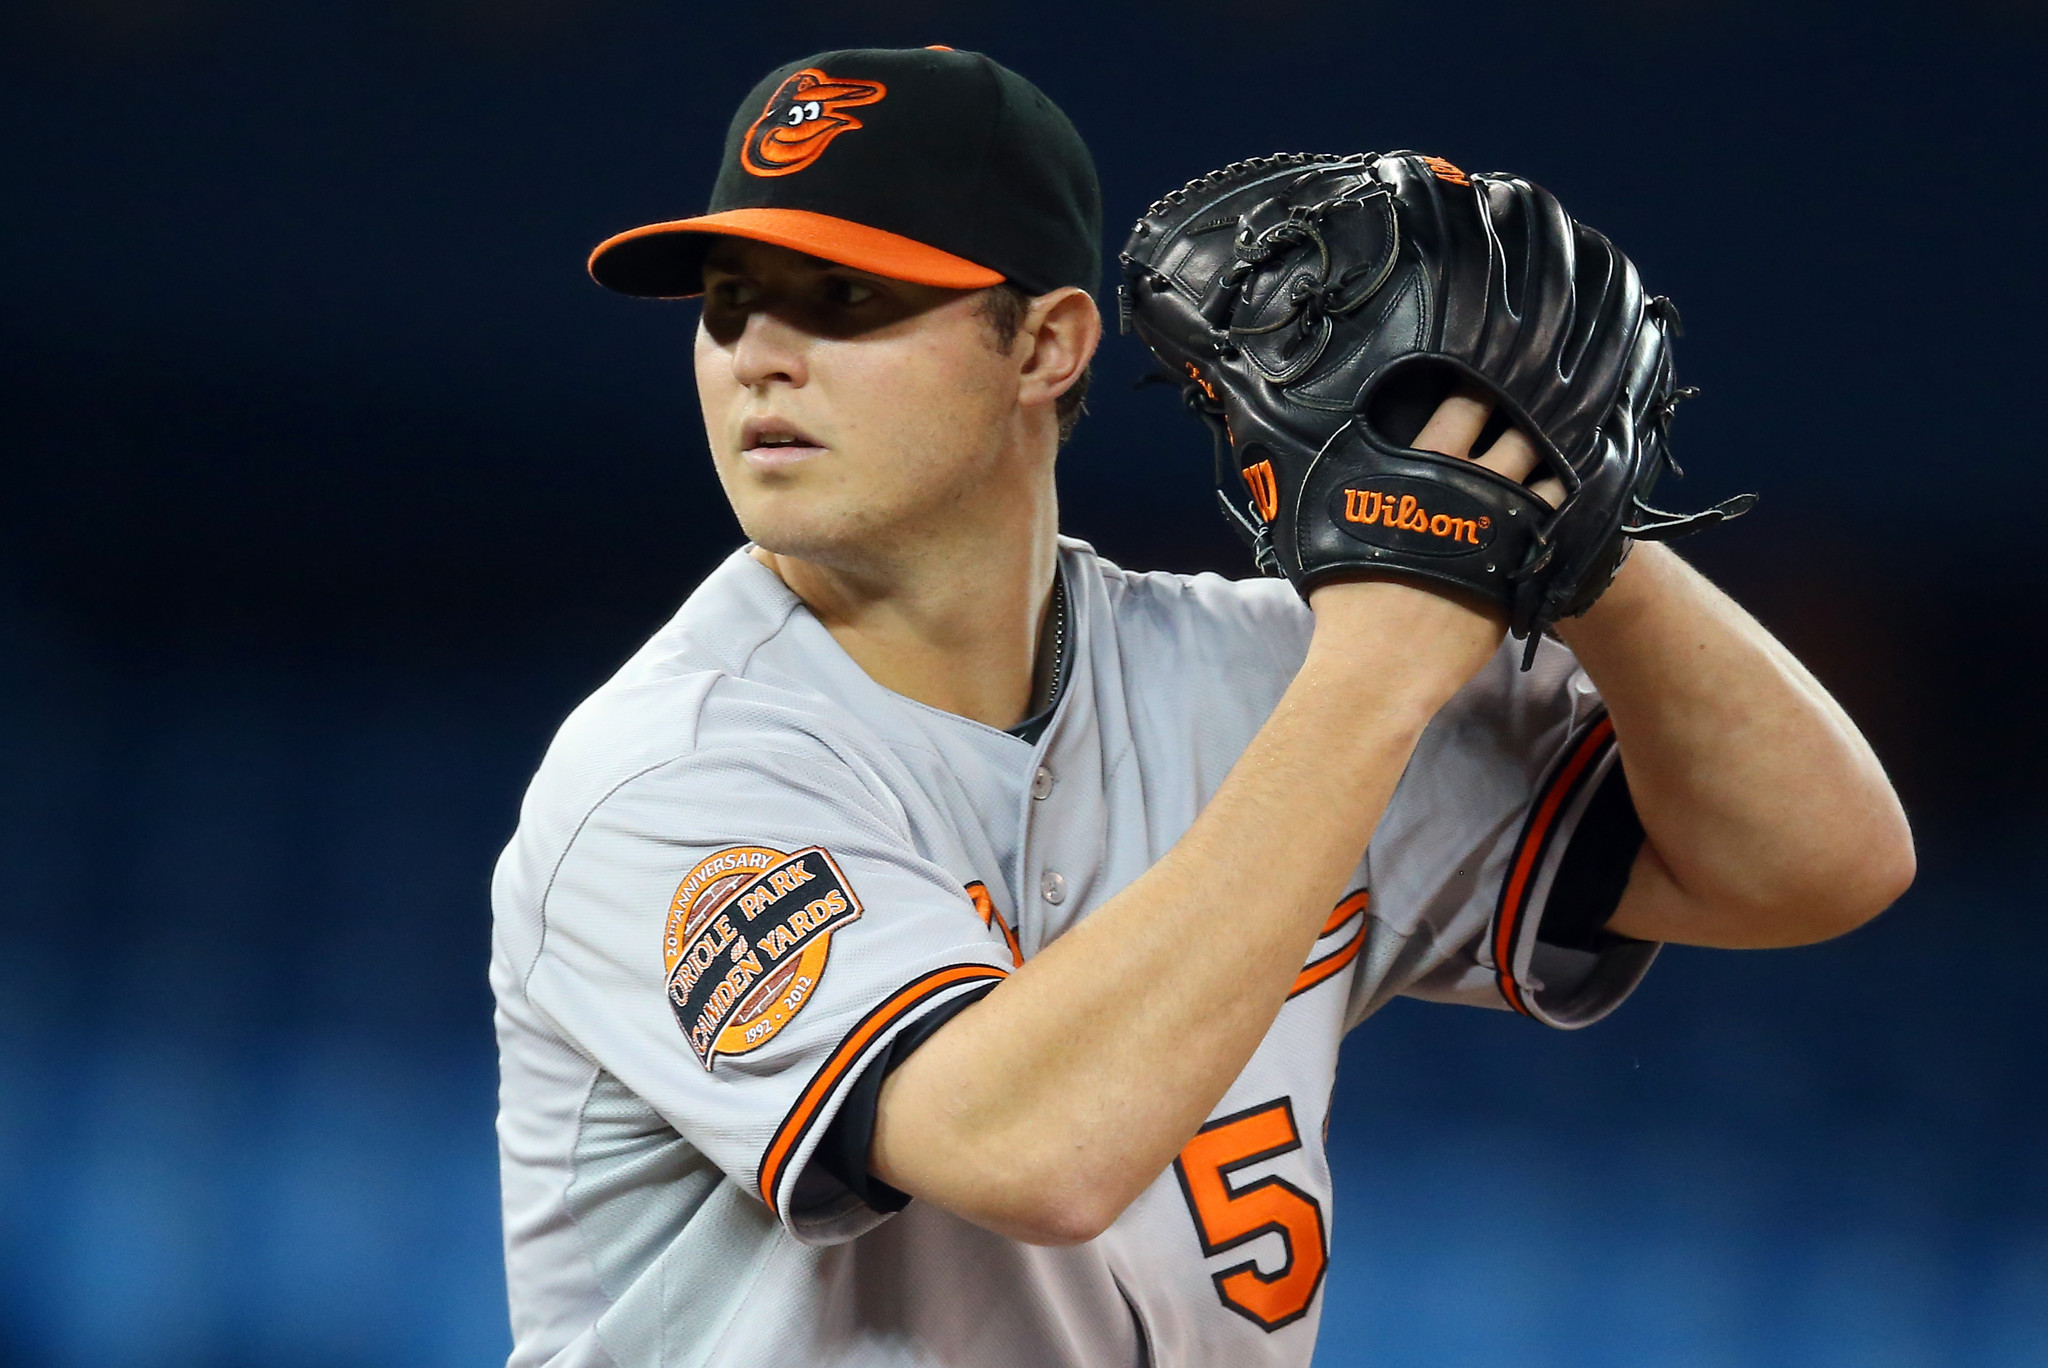 Bal-orioles-closer-zach-britton-details-the-impact-of-chiti-and-wallace-on-his-career-20161104